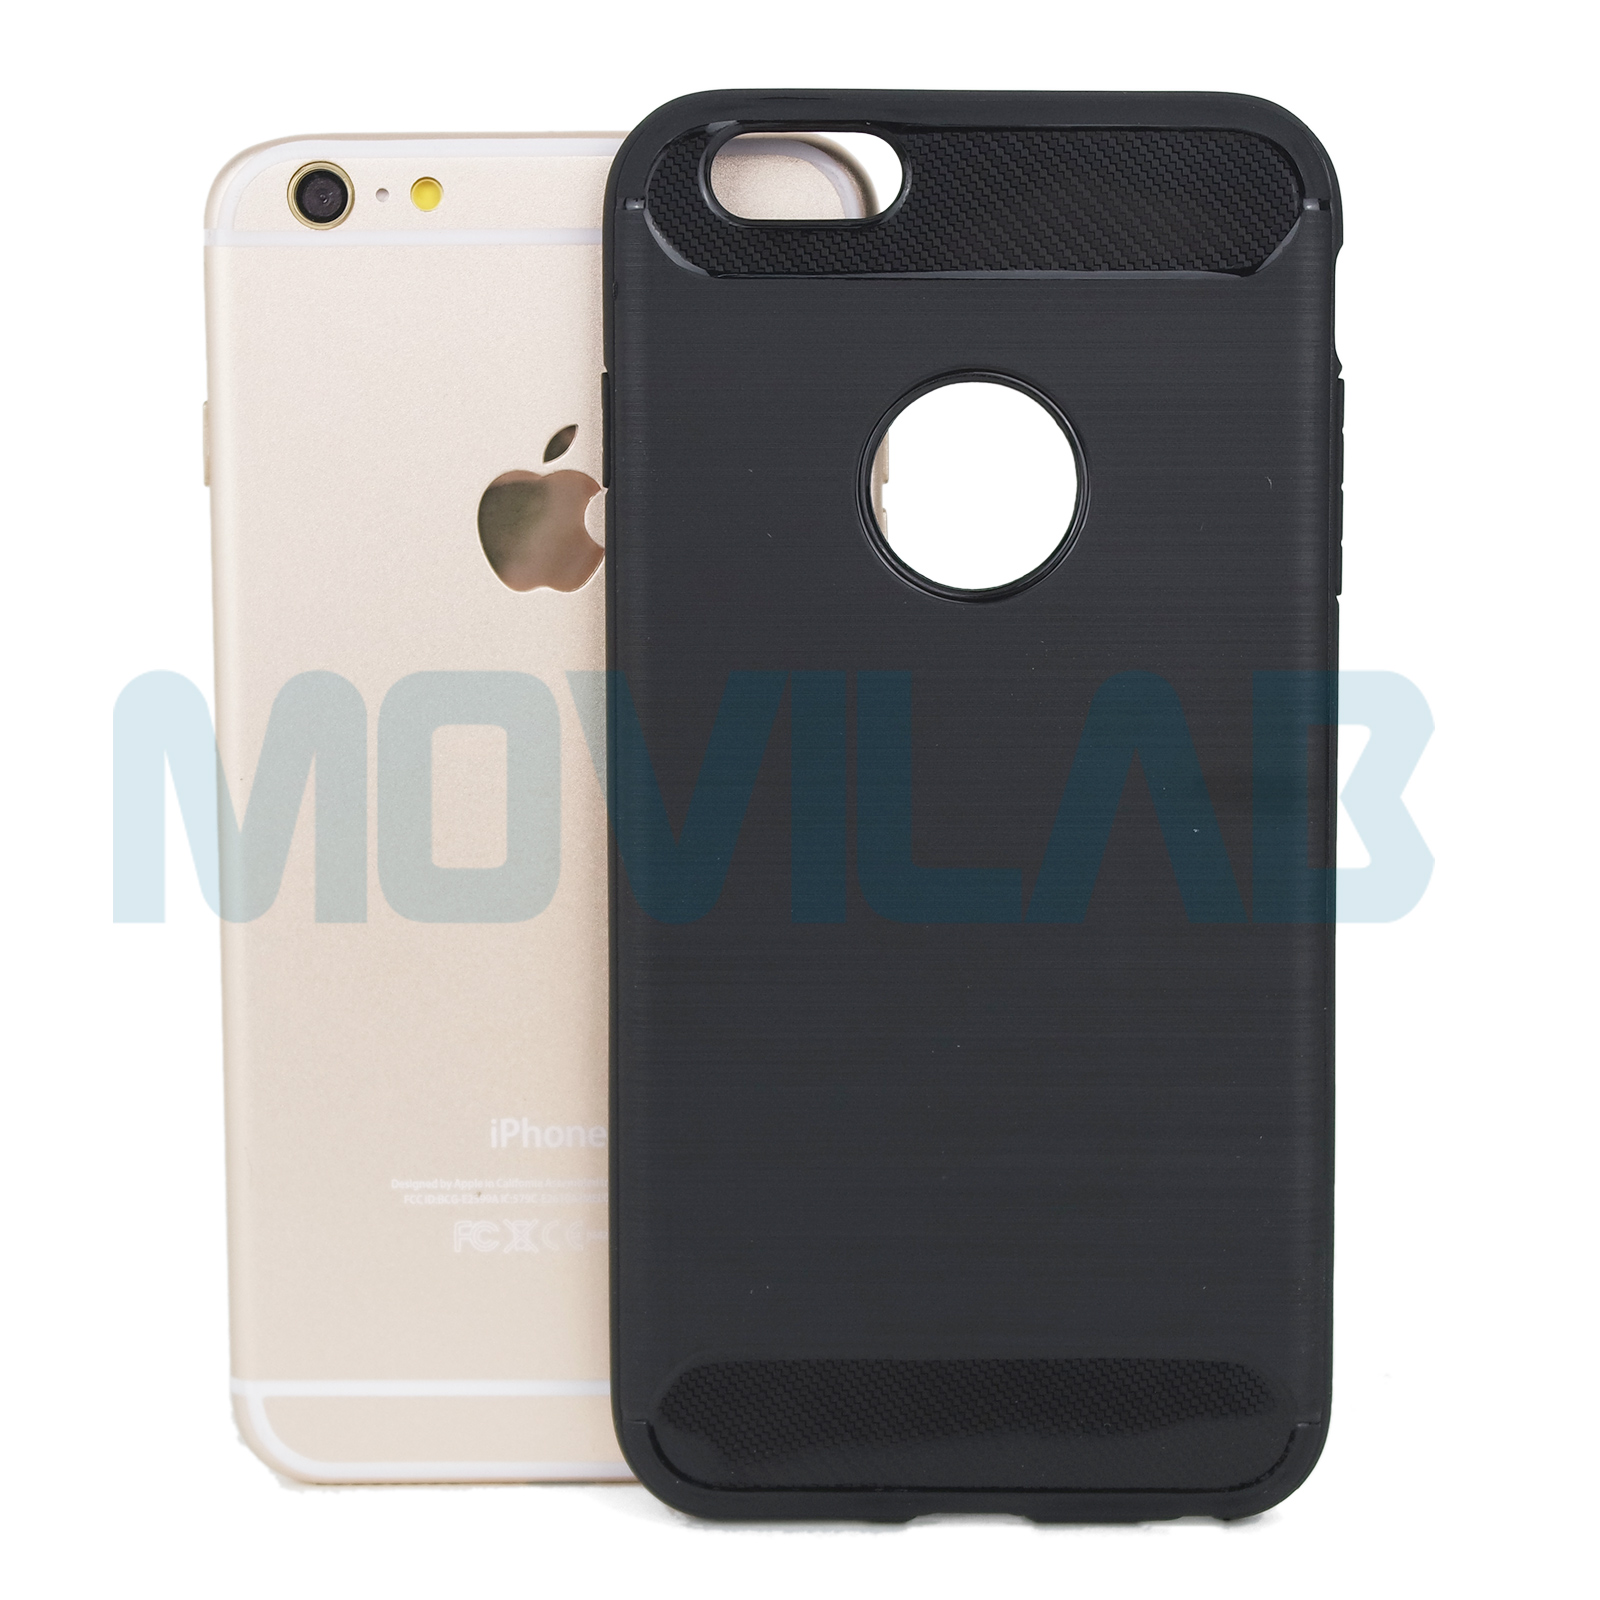 Funda Iphone 6 Plus antigolpes